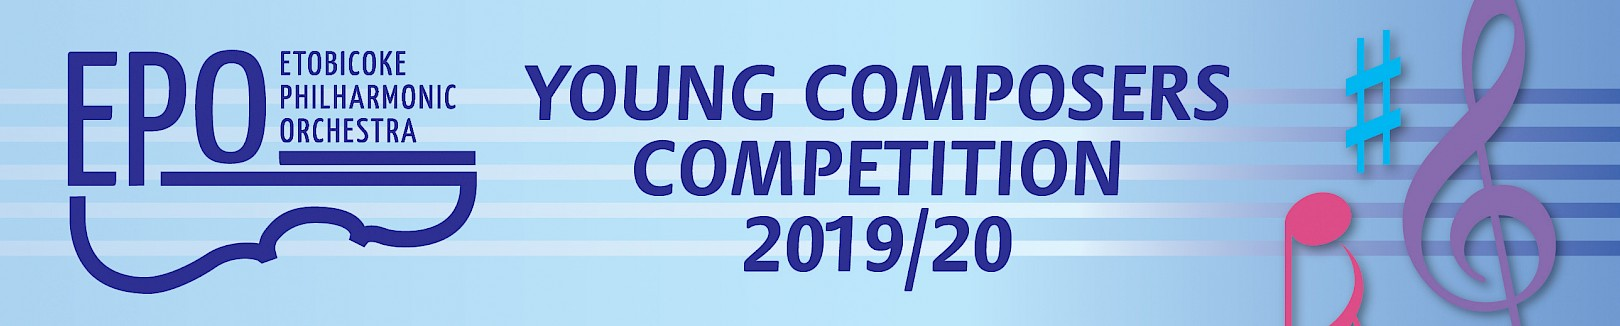 Young Composers Competition 2019/20